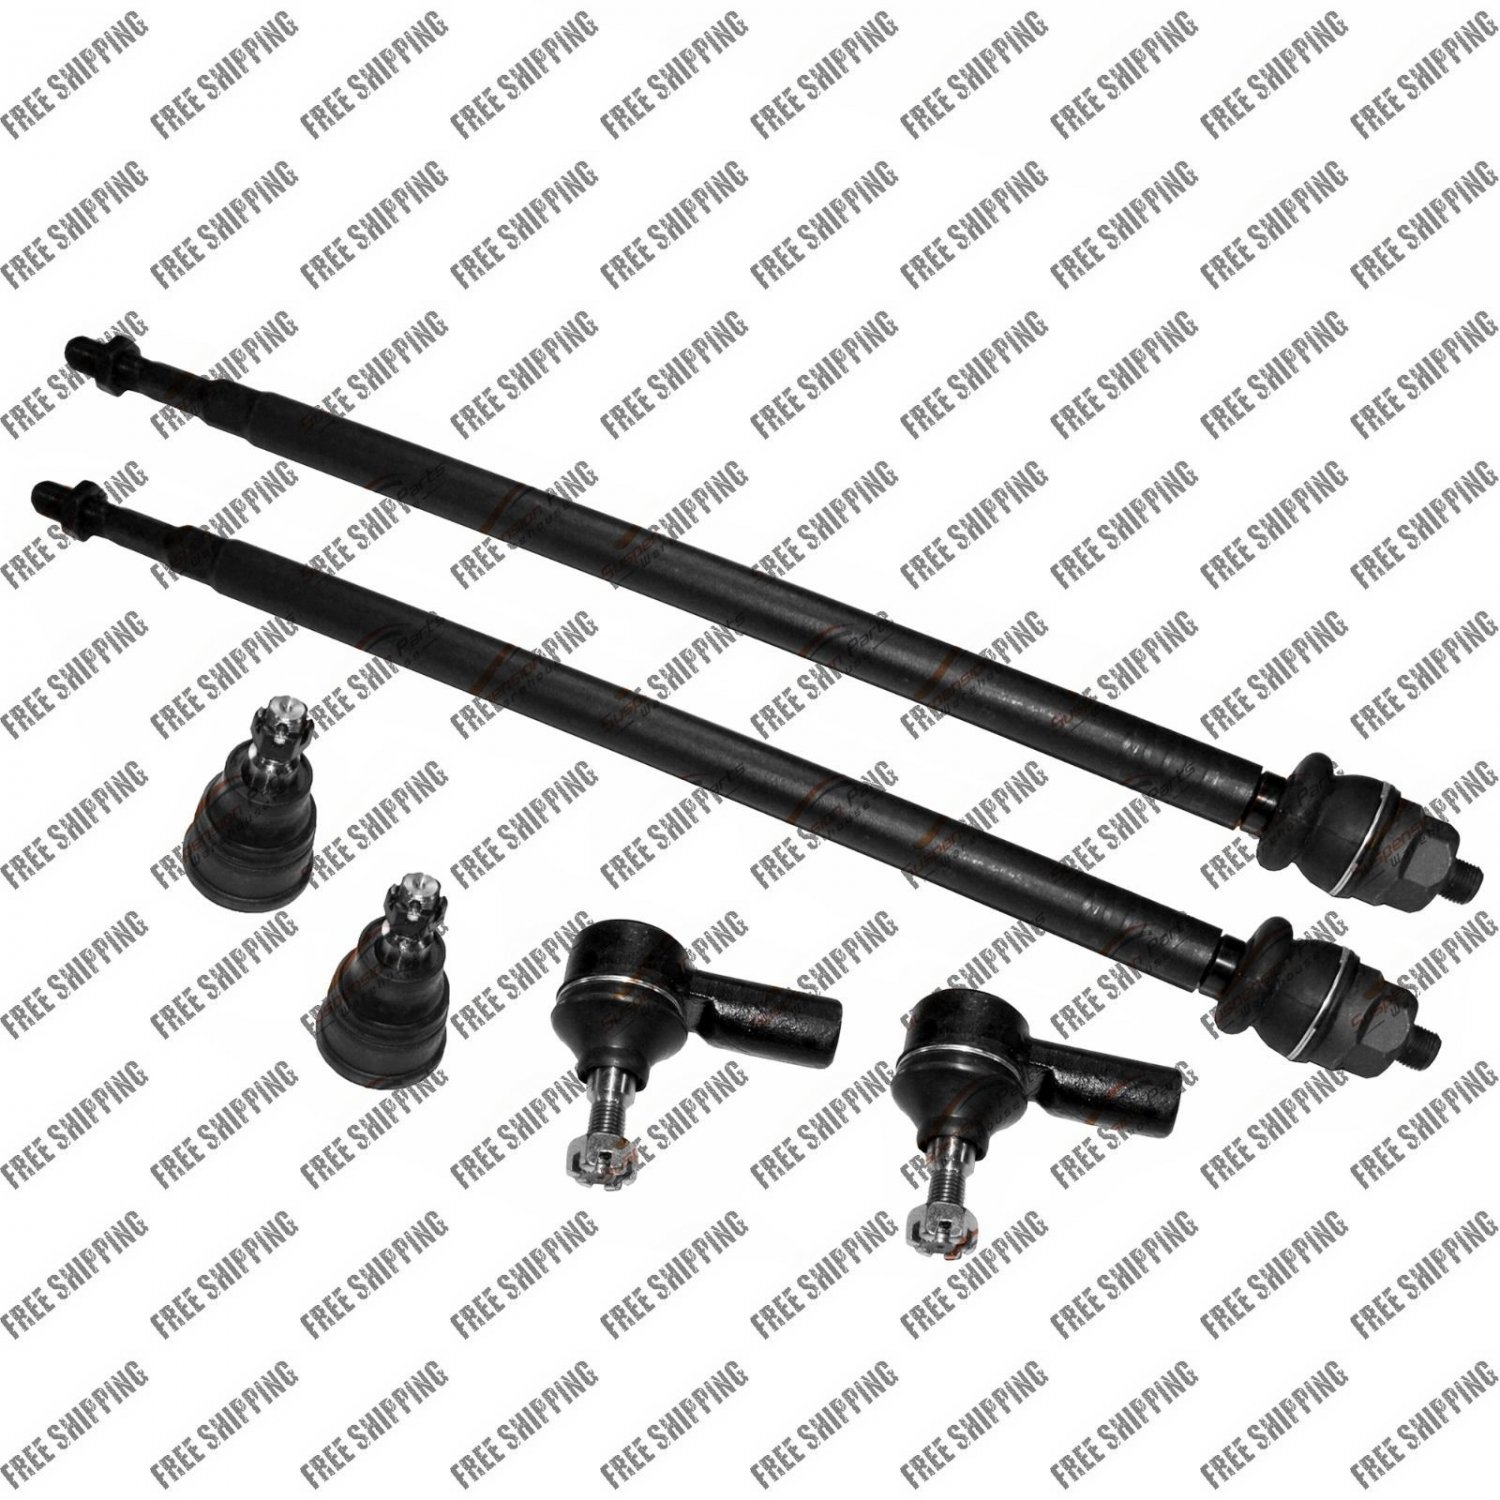 New Front Steering Tie Rod End Ball  Joint Suspension Part fits 02-06 Honda CR-V